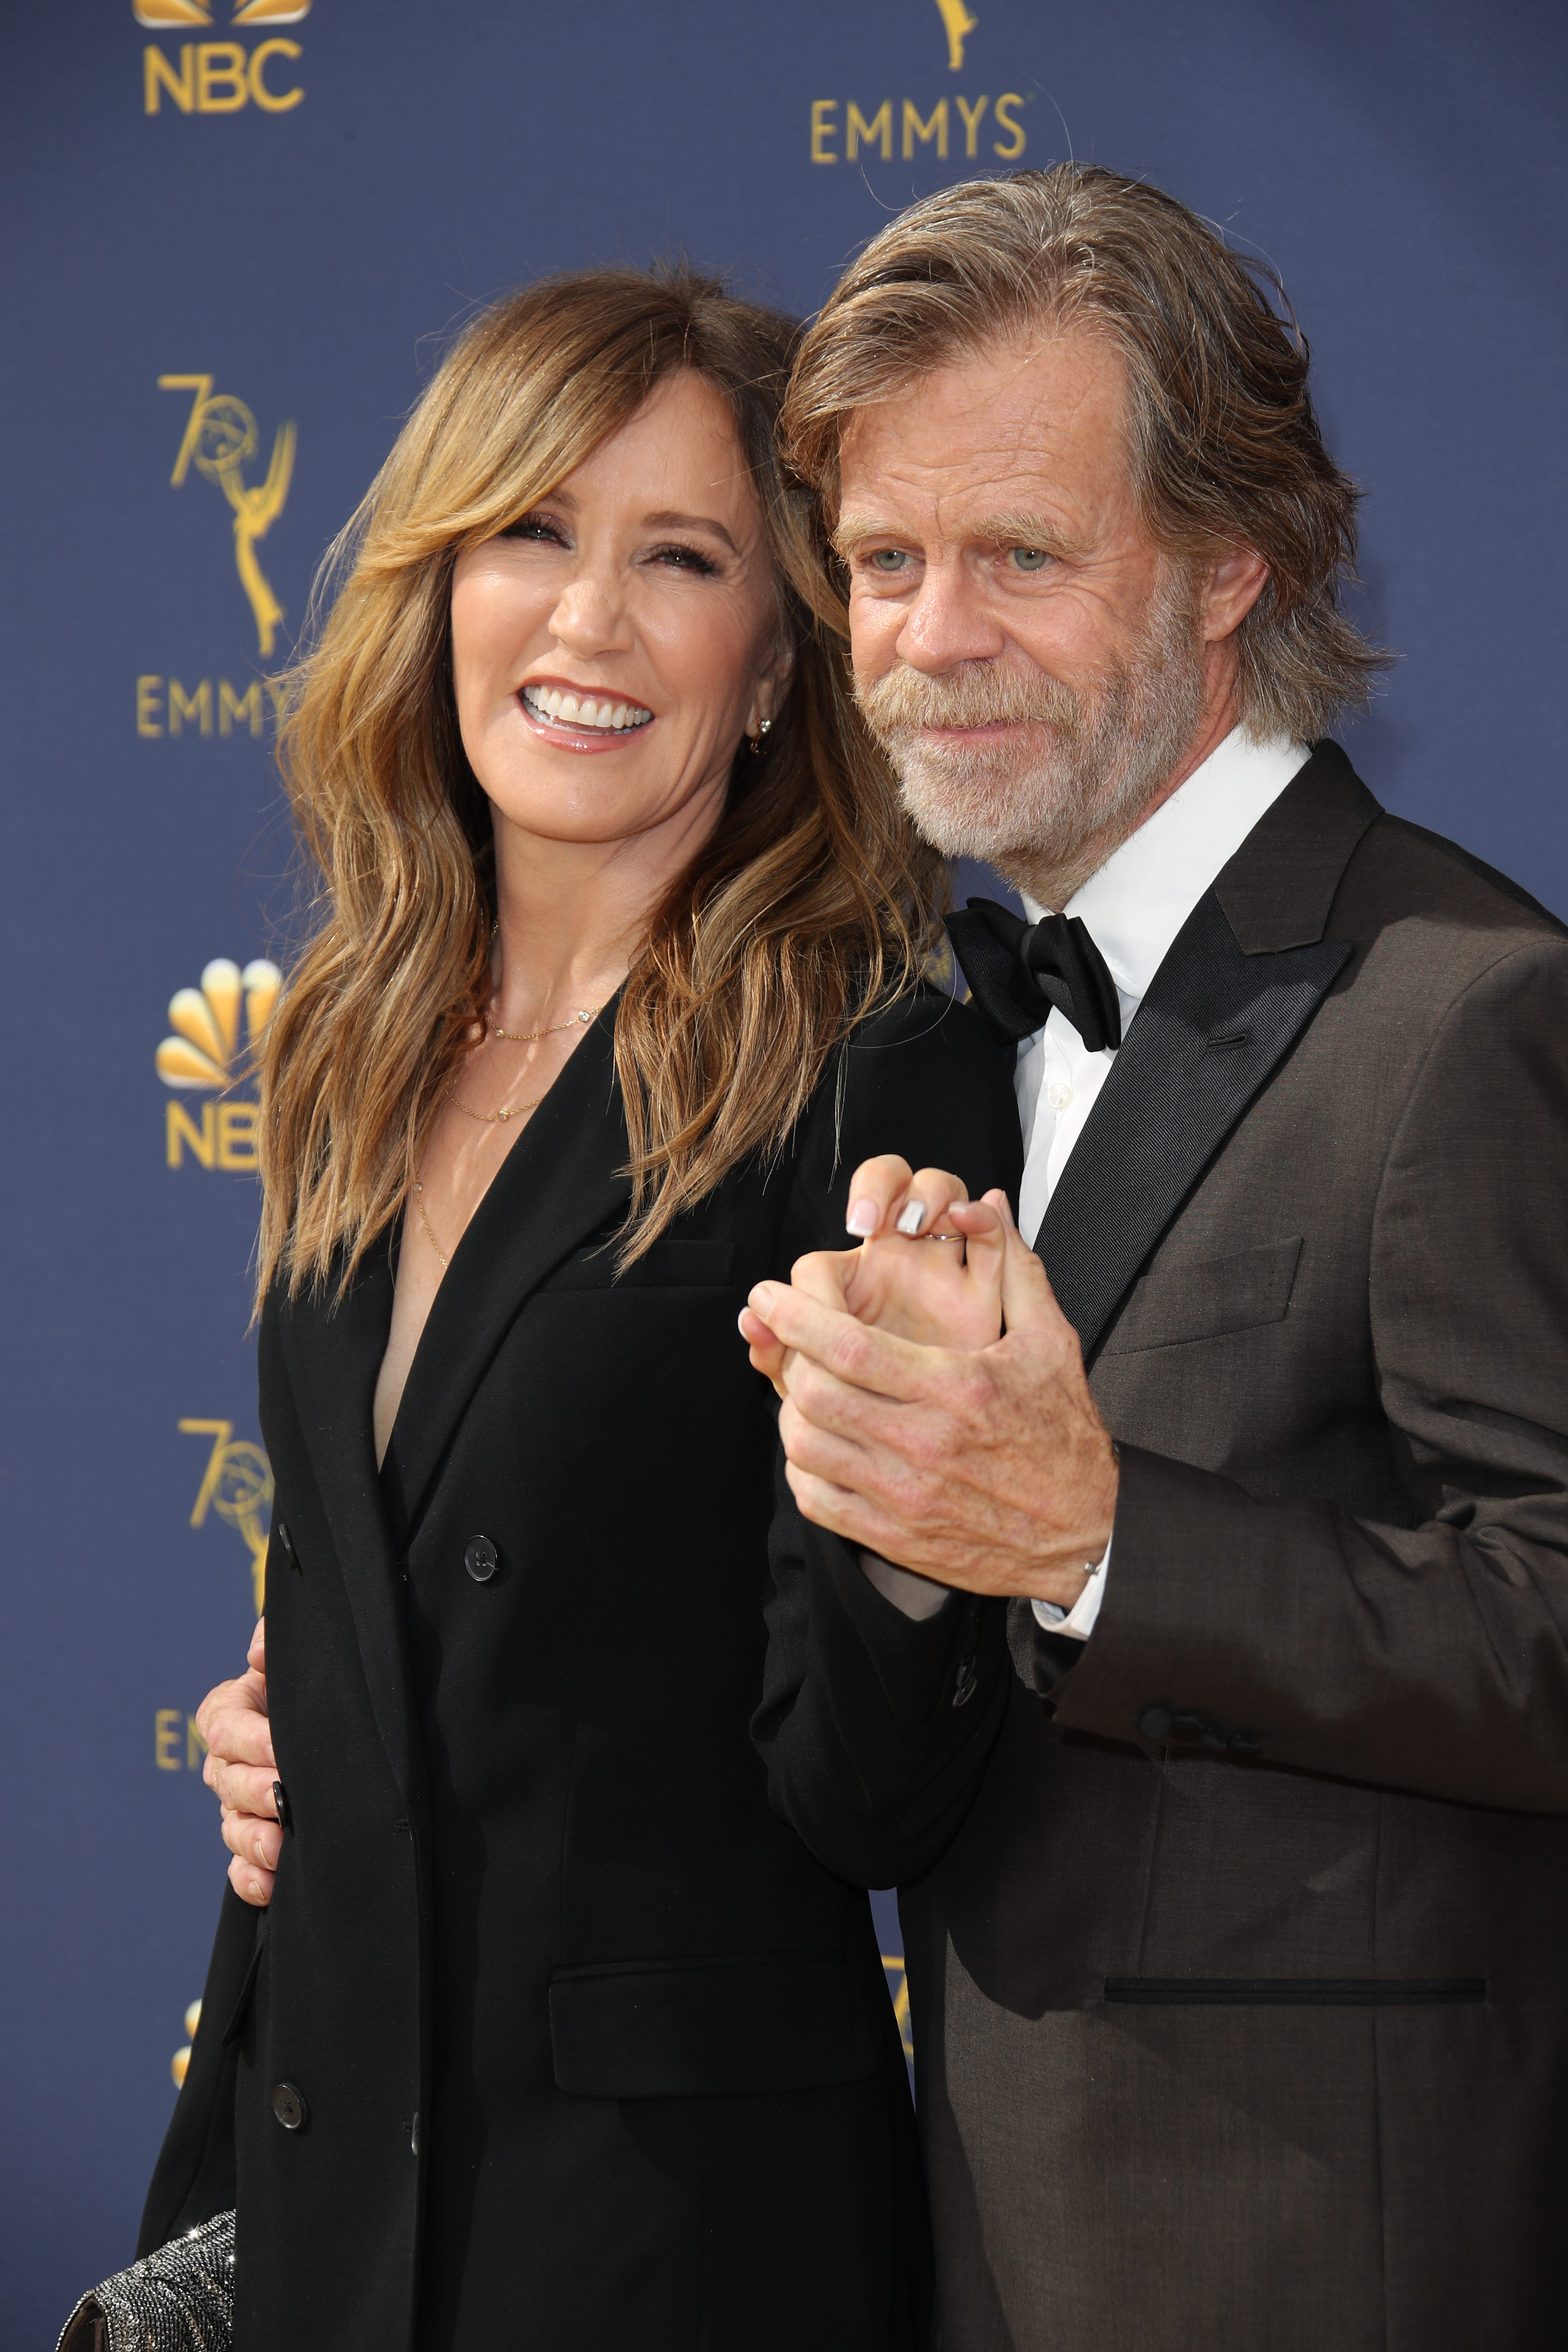 William H. Macy's best advice before Felicity Huffman's cheating scandal: 'Never lie'